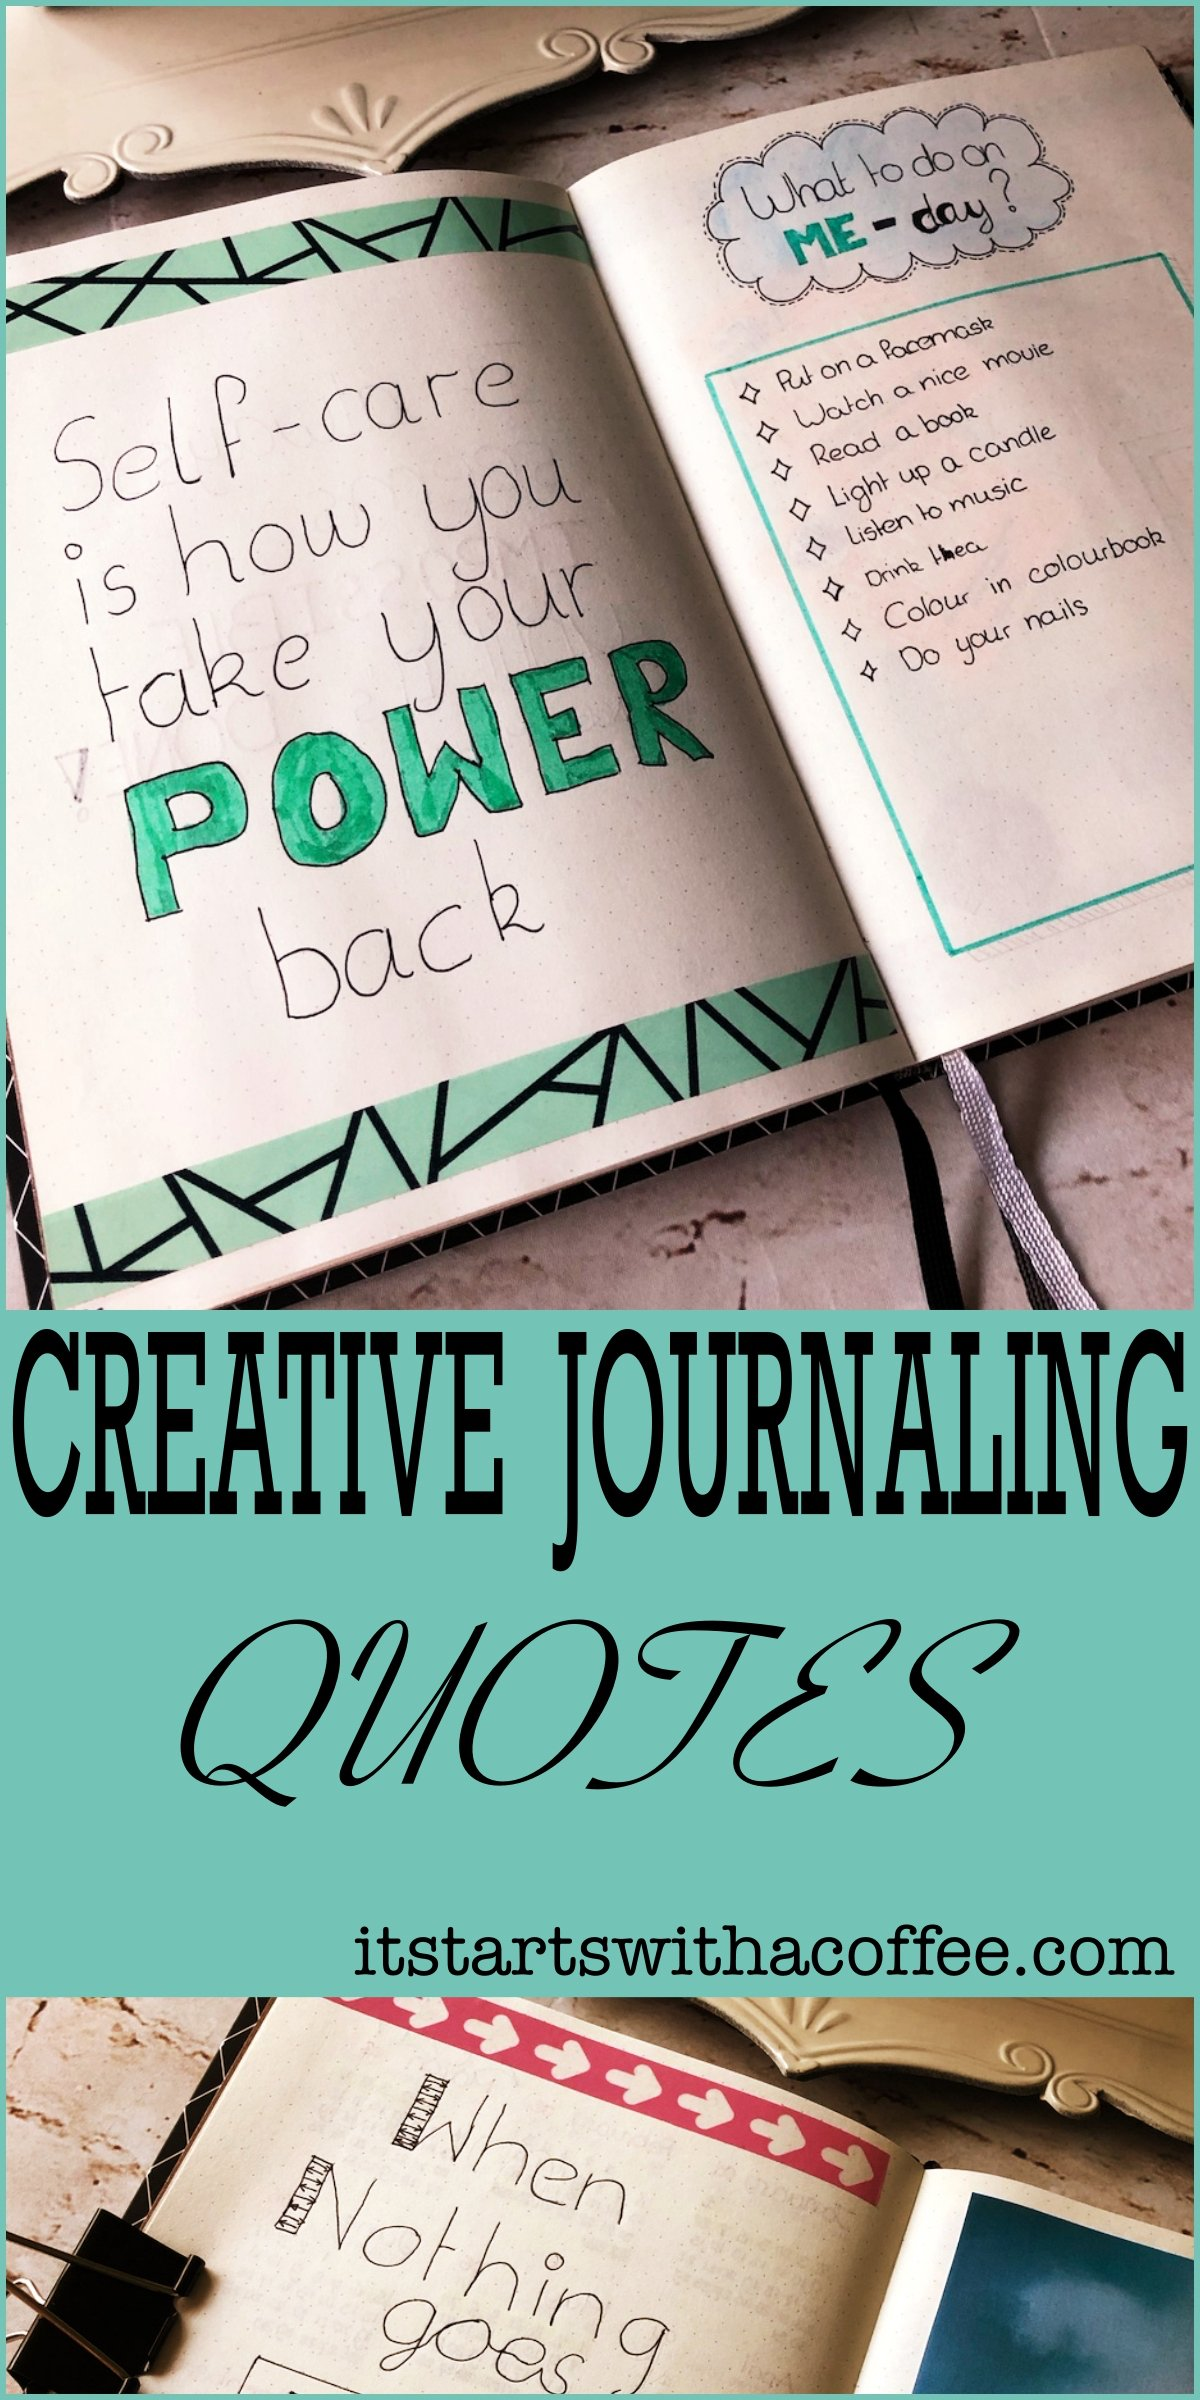 Creative journaling Quotes #2 - itstartswithacoffee.com #journaling #creativejournaling #quotes